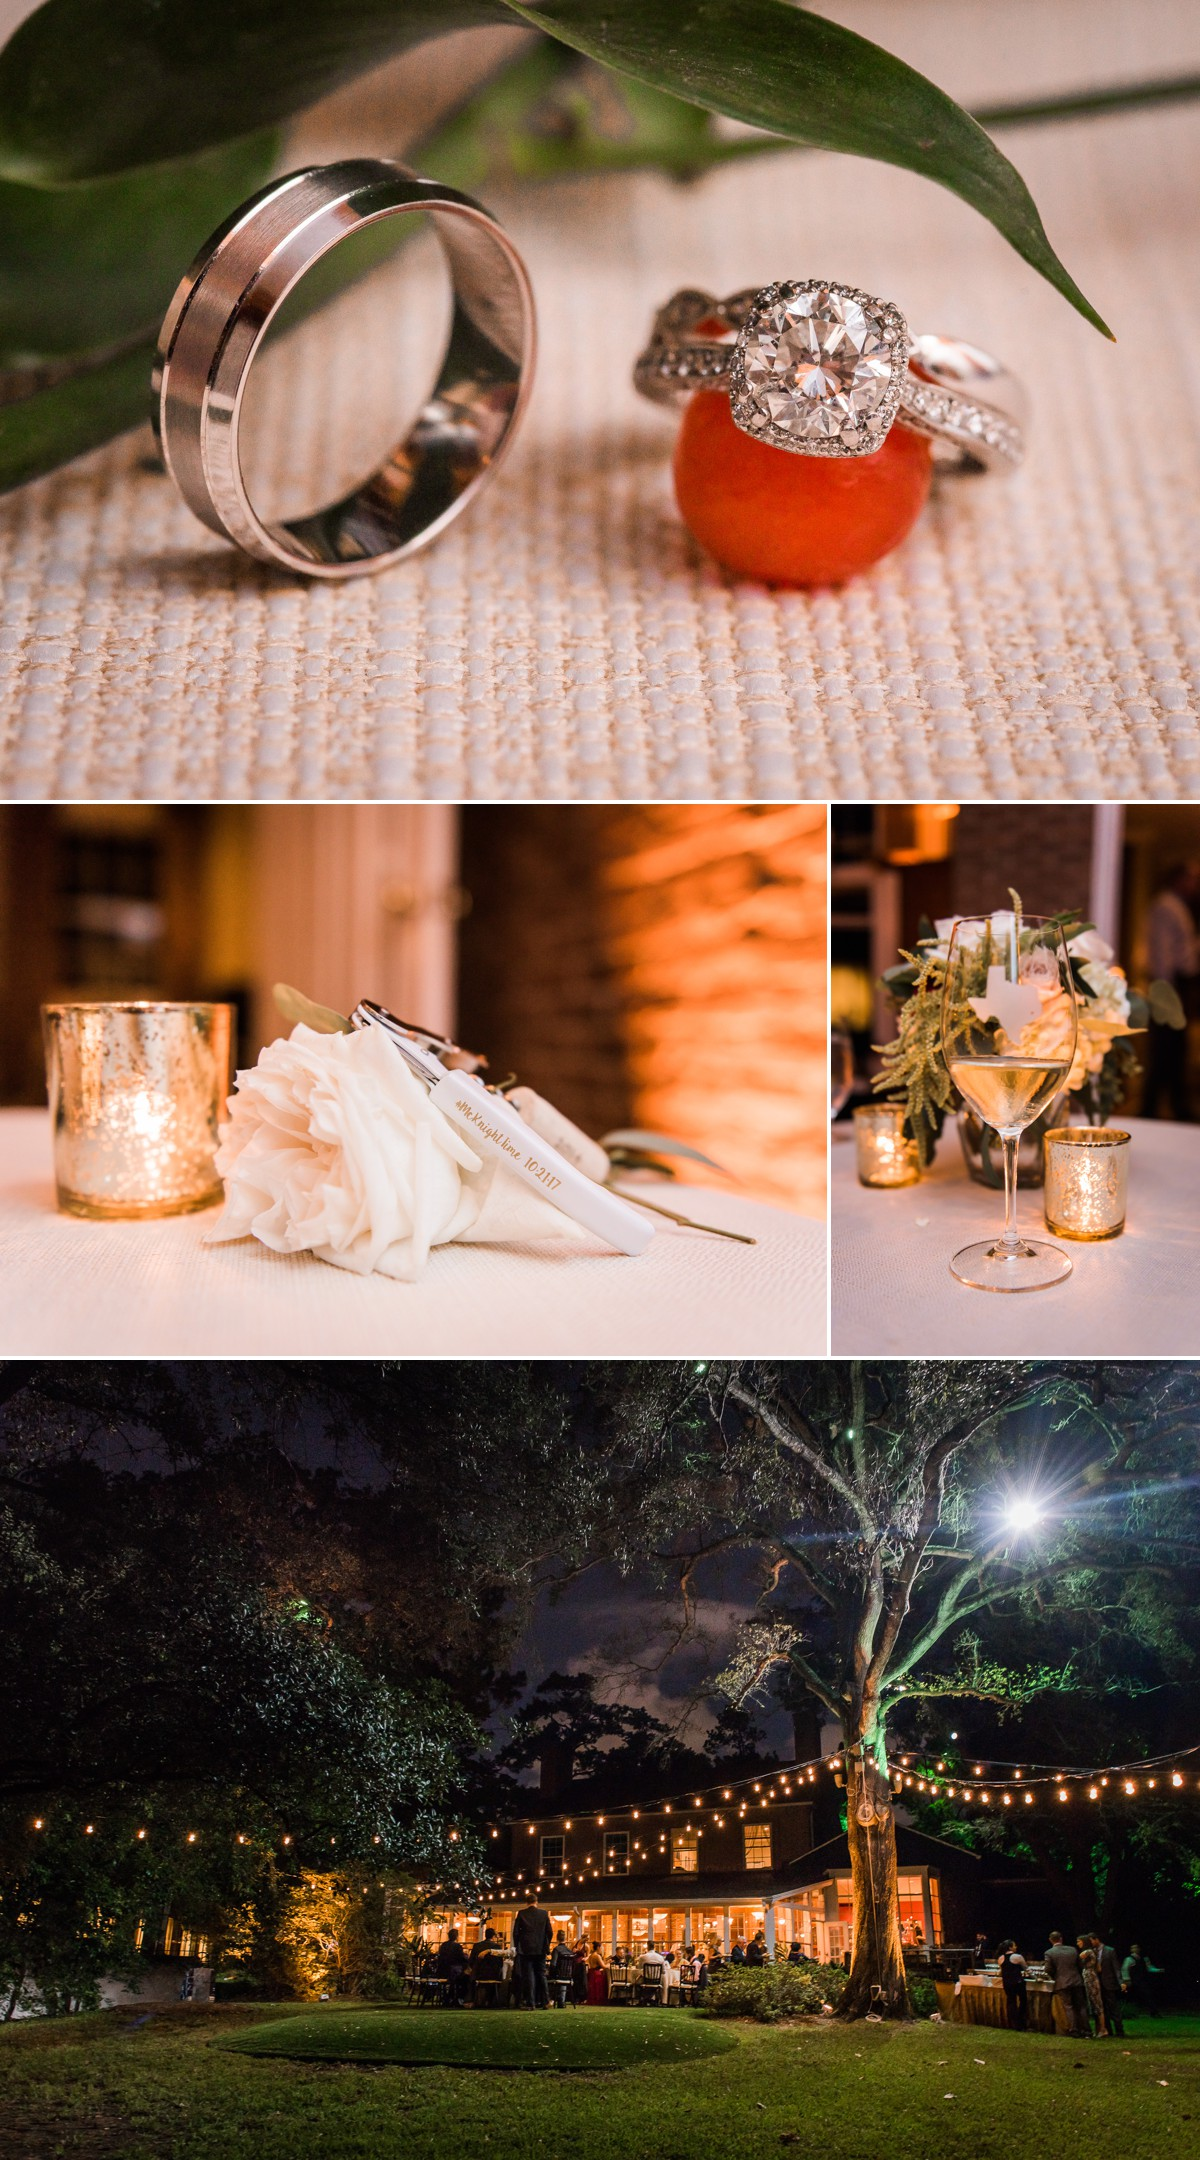 Manor House Wedding at The Houstonian Hotel Reception details night time